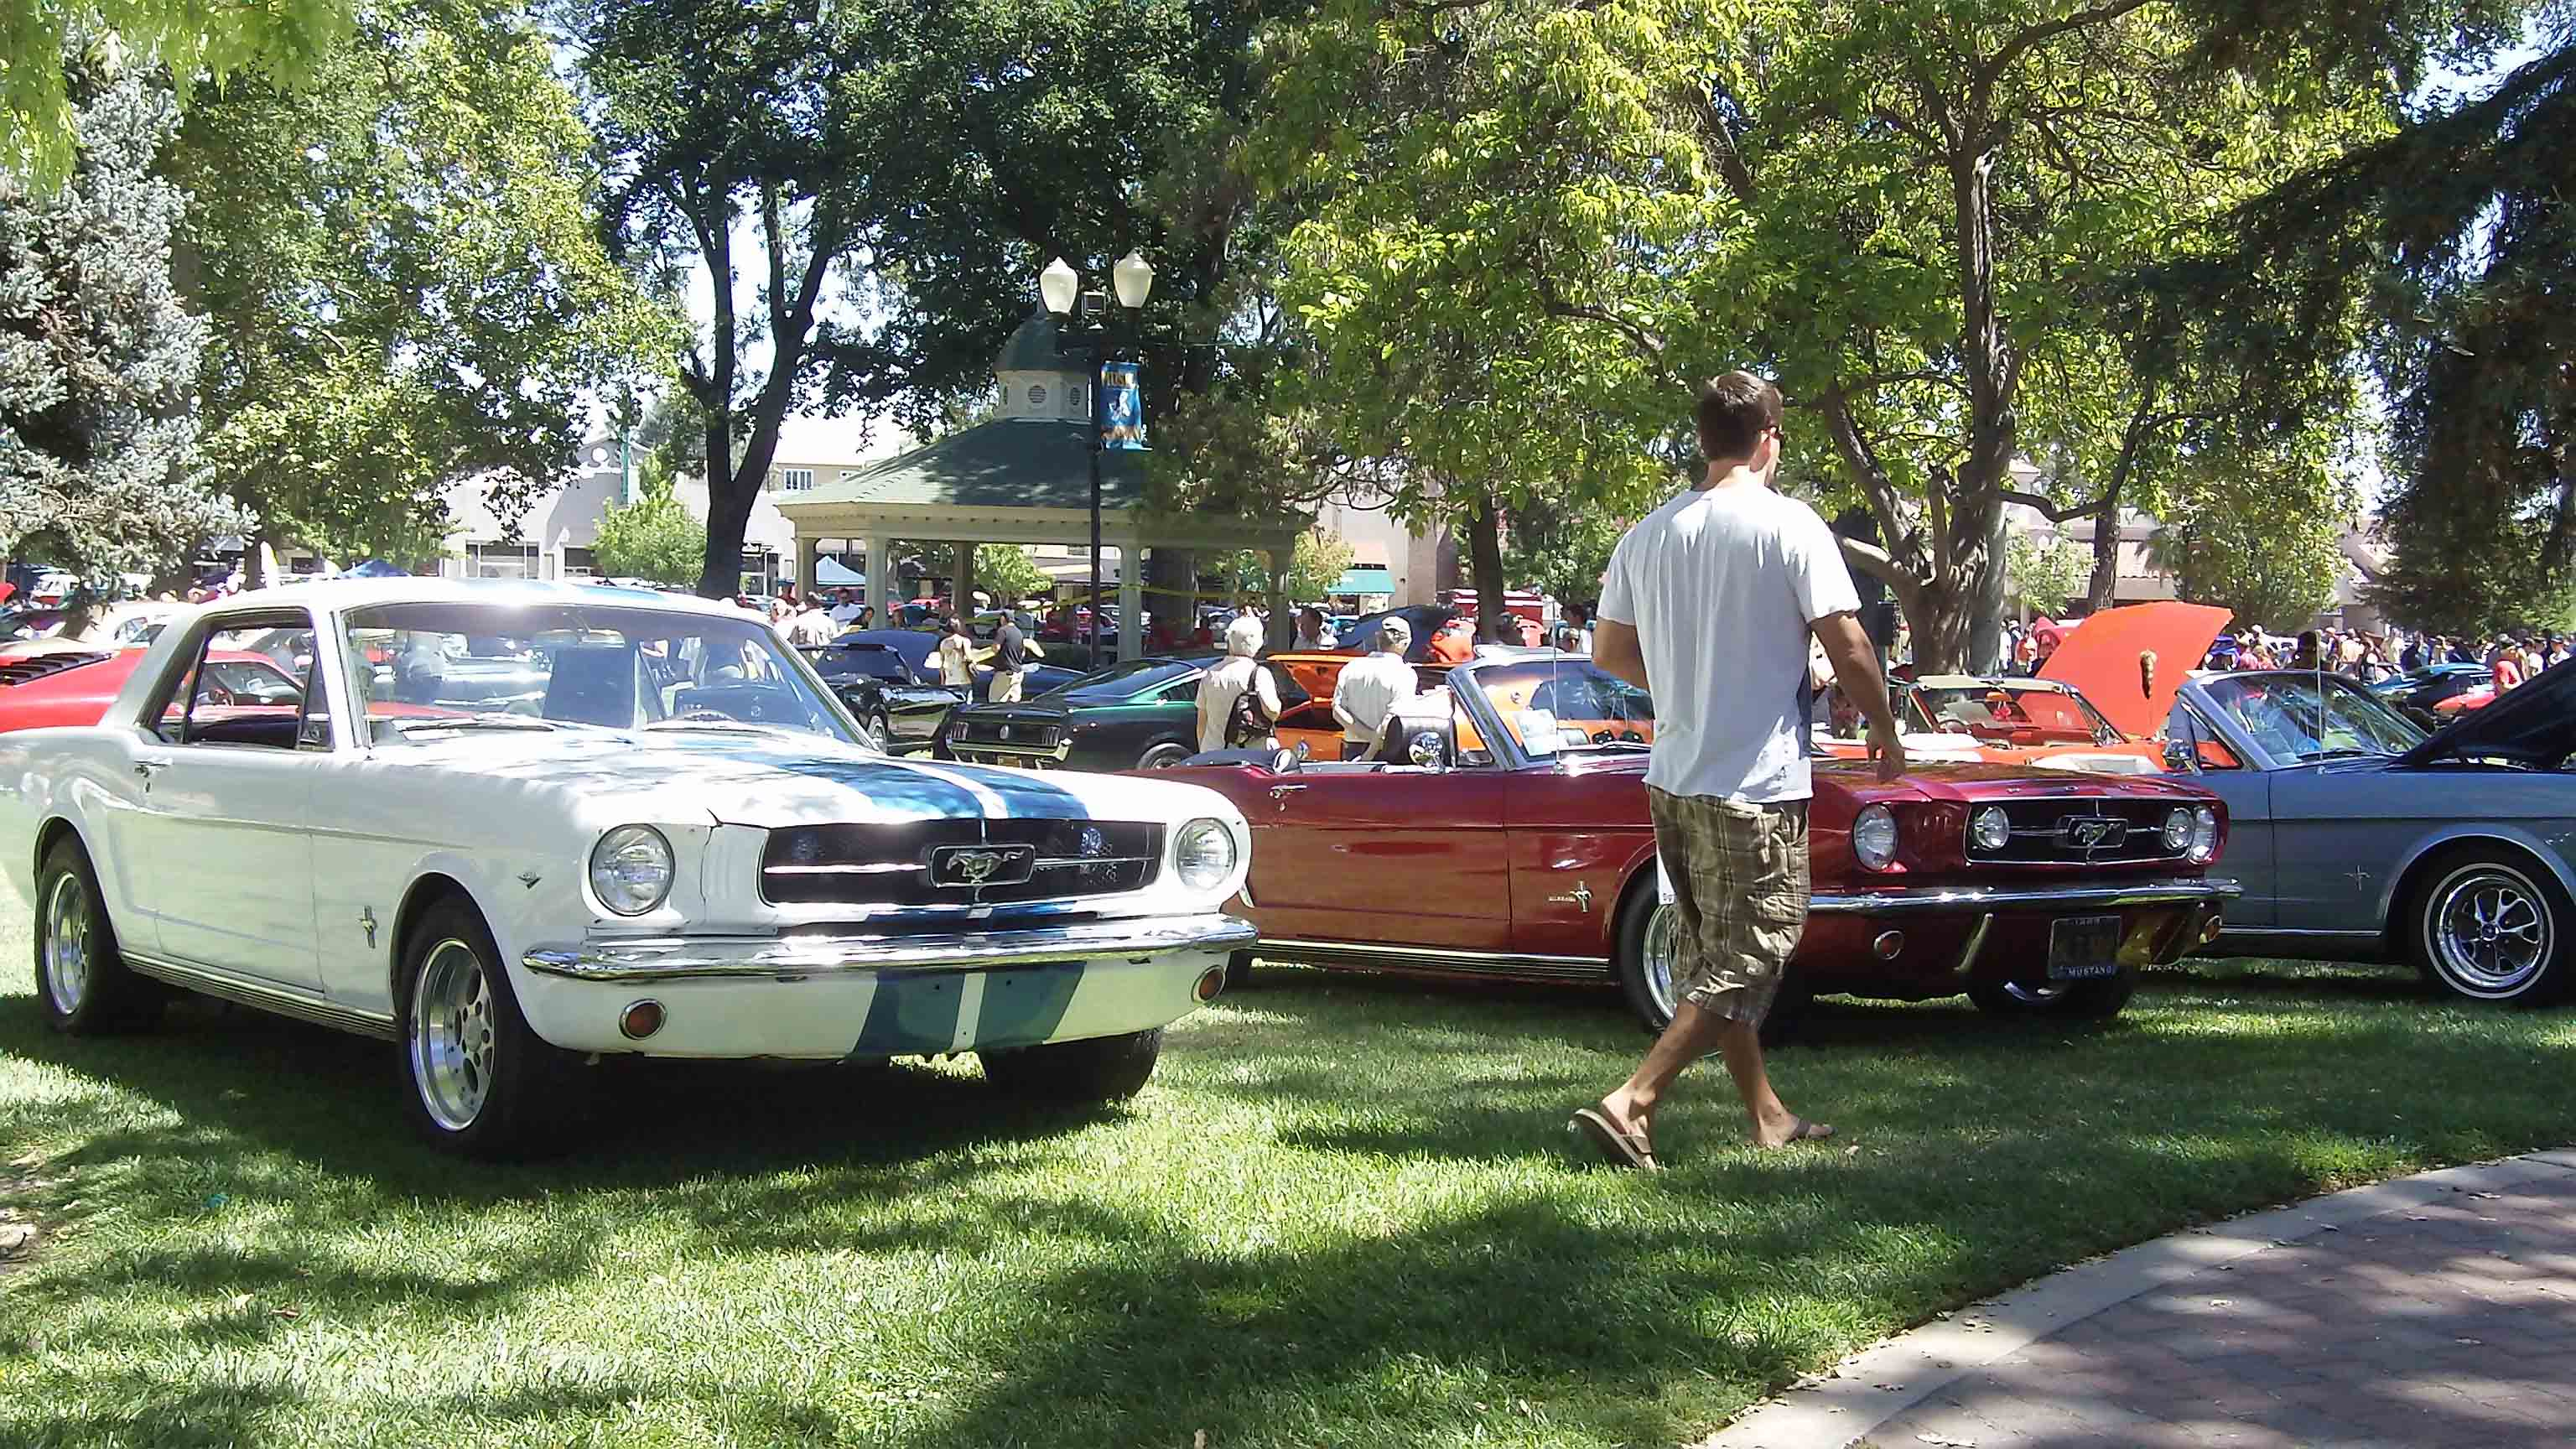 St Louis Area Car Shows For The Weekend Of July Th July Th - St louis car shows